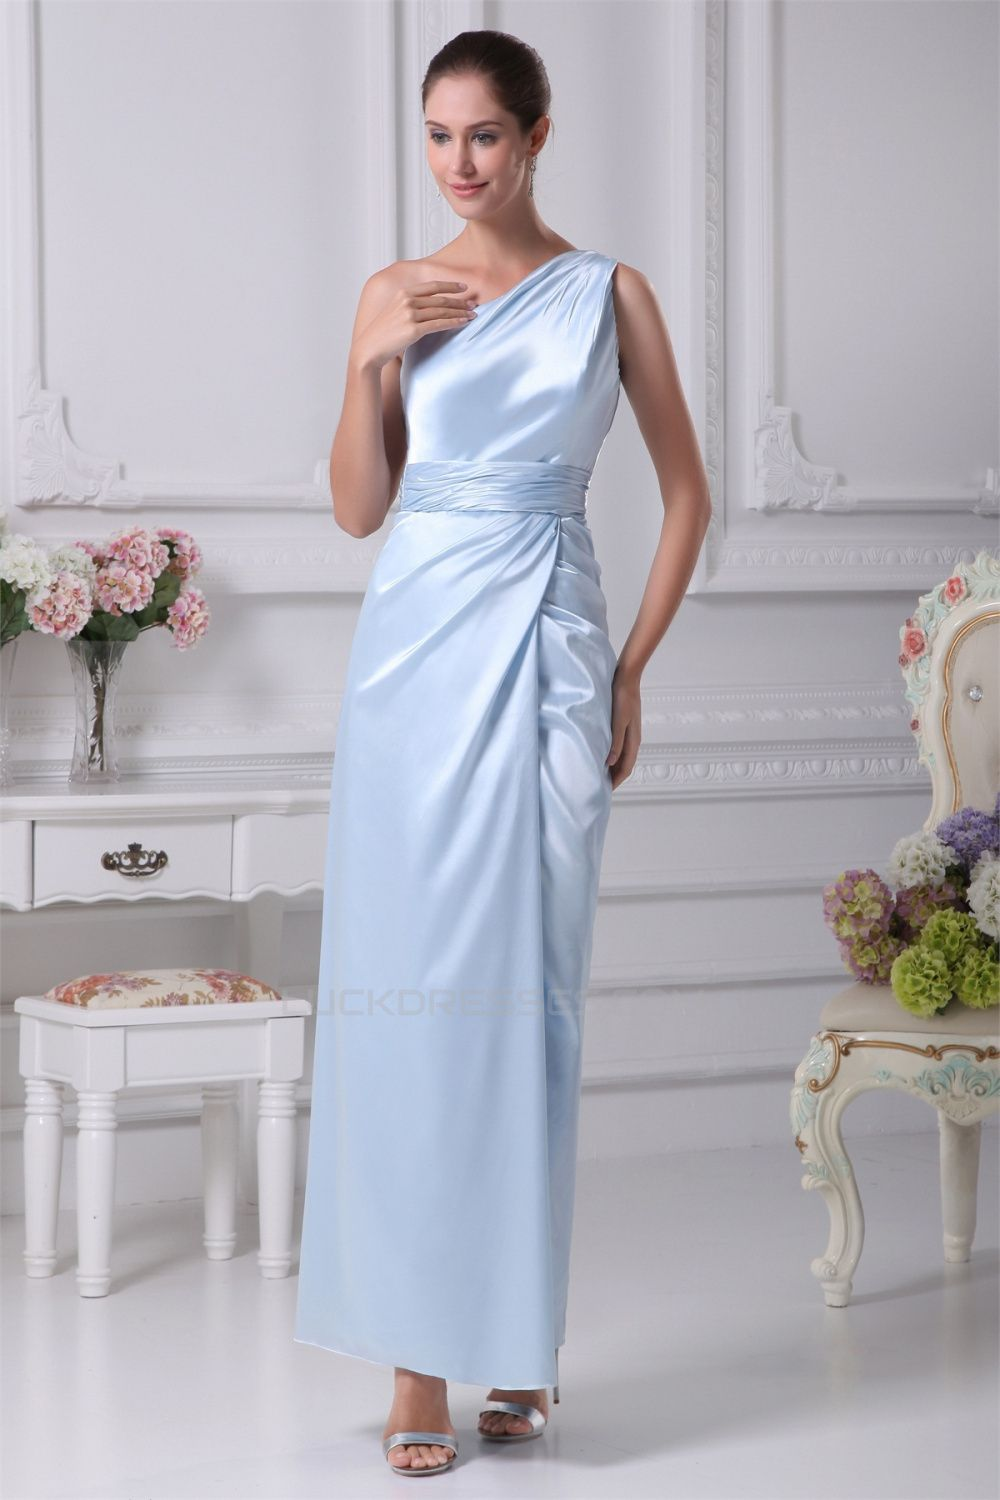 Satin Woven bridesmaid homecoming dresses recommendations to wear in winter in 2019